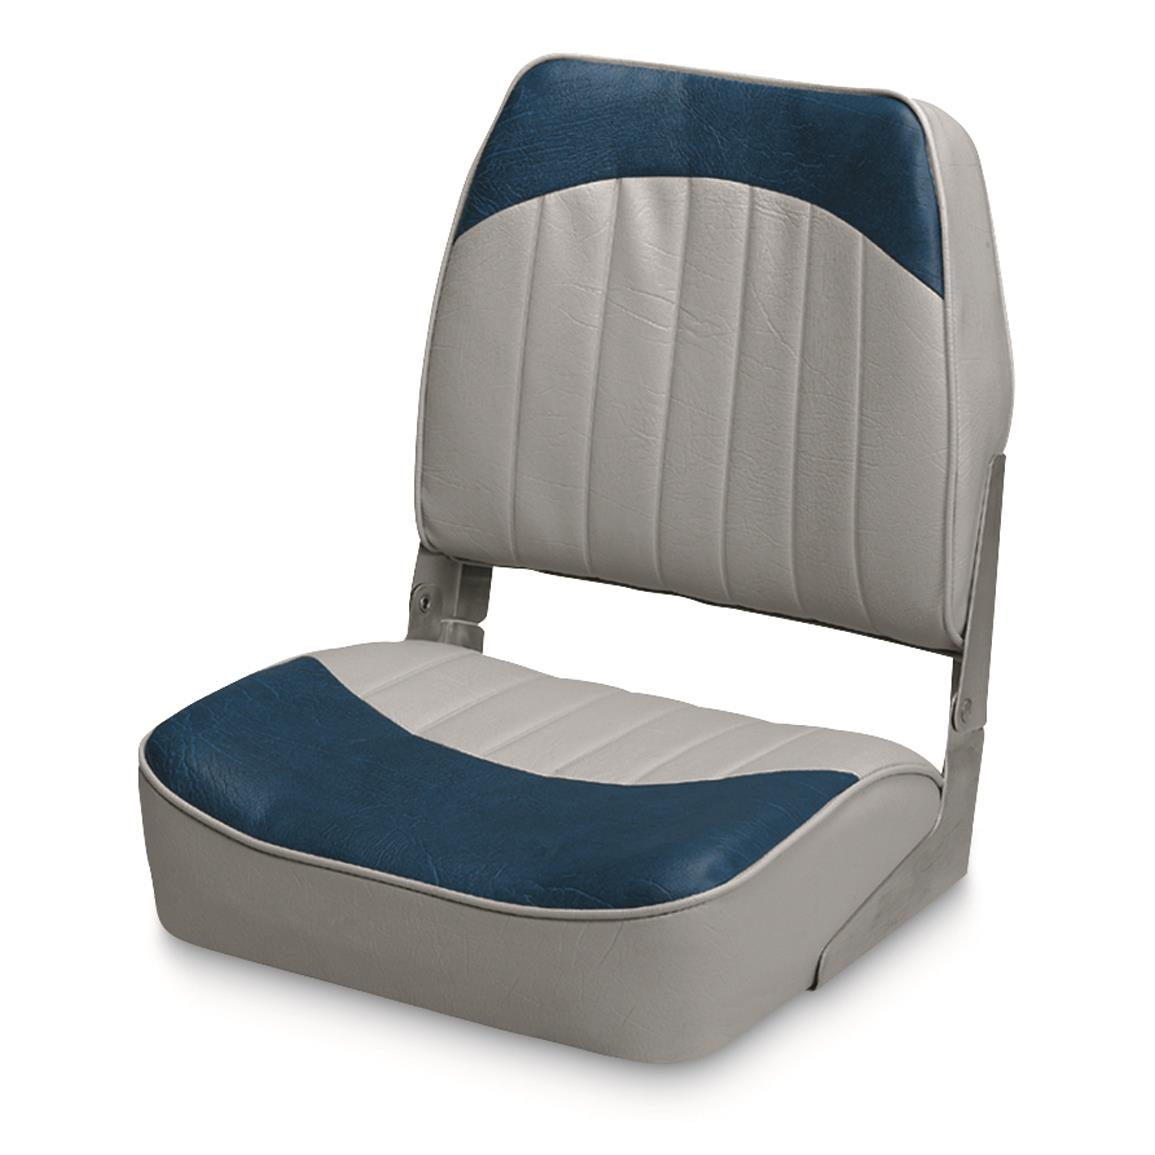 Wise Low - back Economy Fishing Boat Seat, Gray/Navy